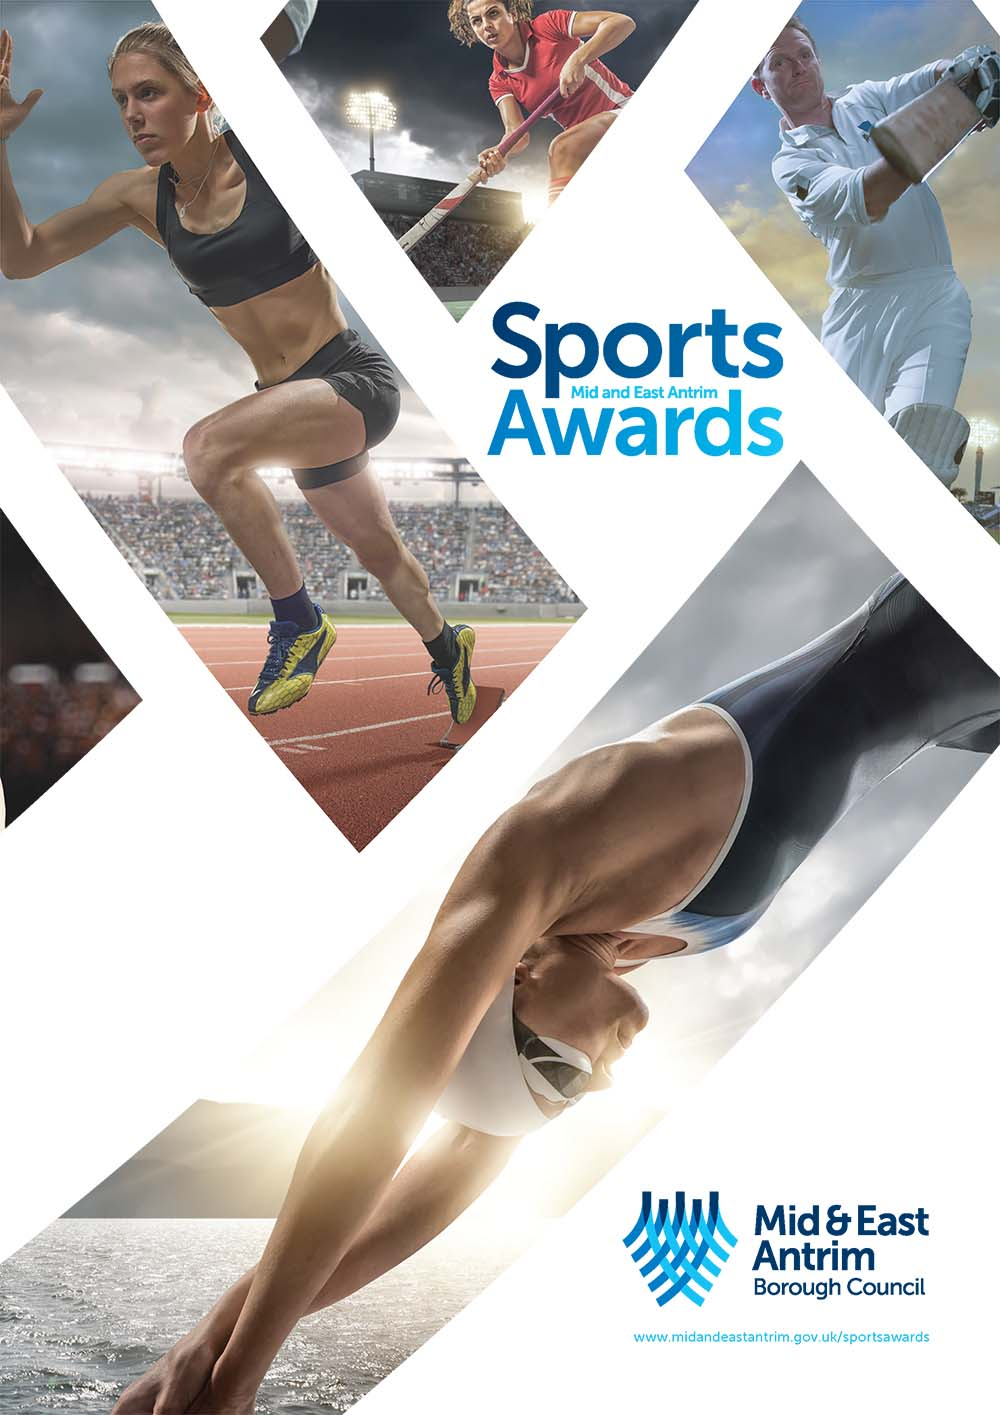 Image of the Sports Awards Guidance booklet